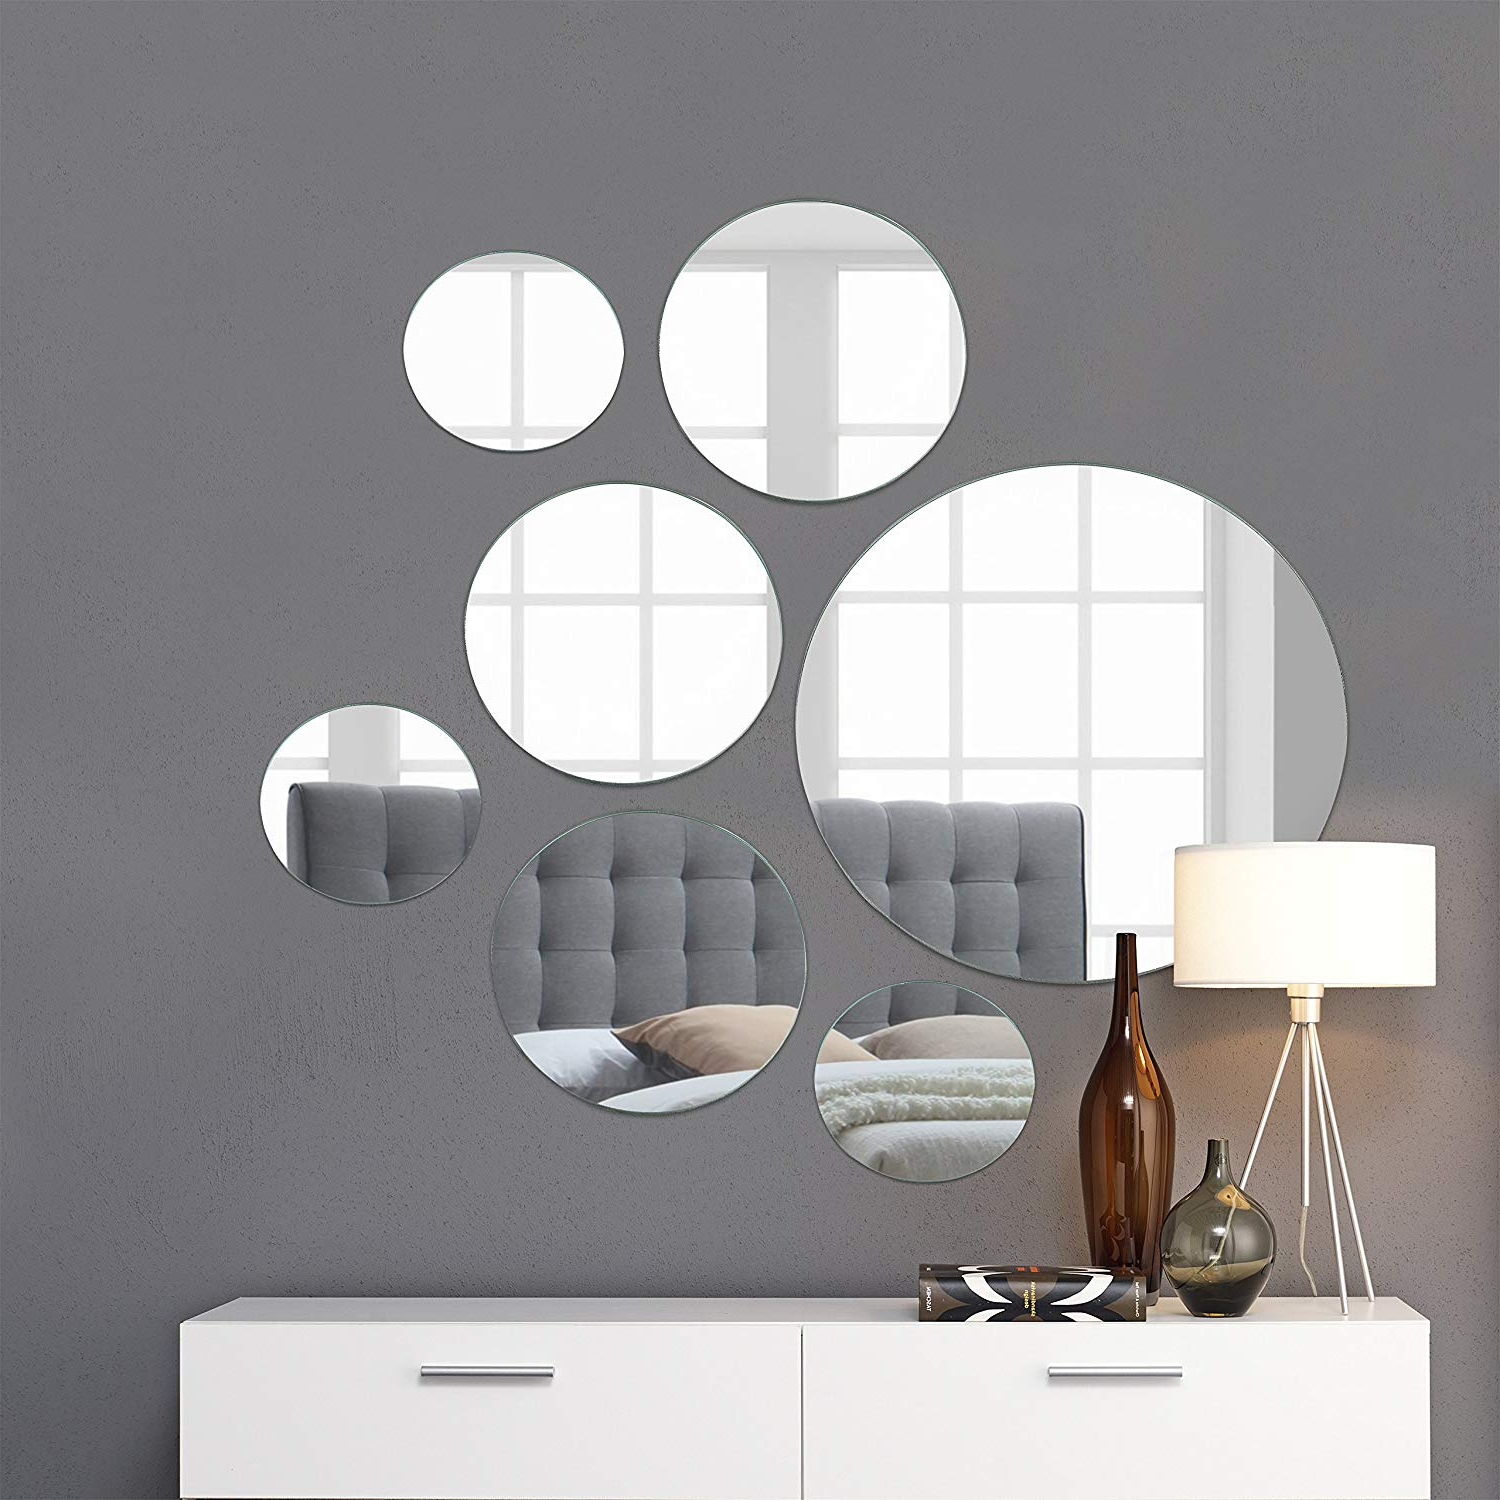 "Round Wall Mirrors Regarding Popular Light In The Dark Medium Round Mirror Wall Mounted Assorted Sizes (1x10"", 3x7"", 3x4"") – Set Of 7 Round Glass Mirrors Wall Decoration For Living Room, (View 6 of 20)"